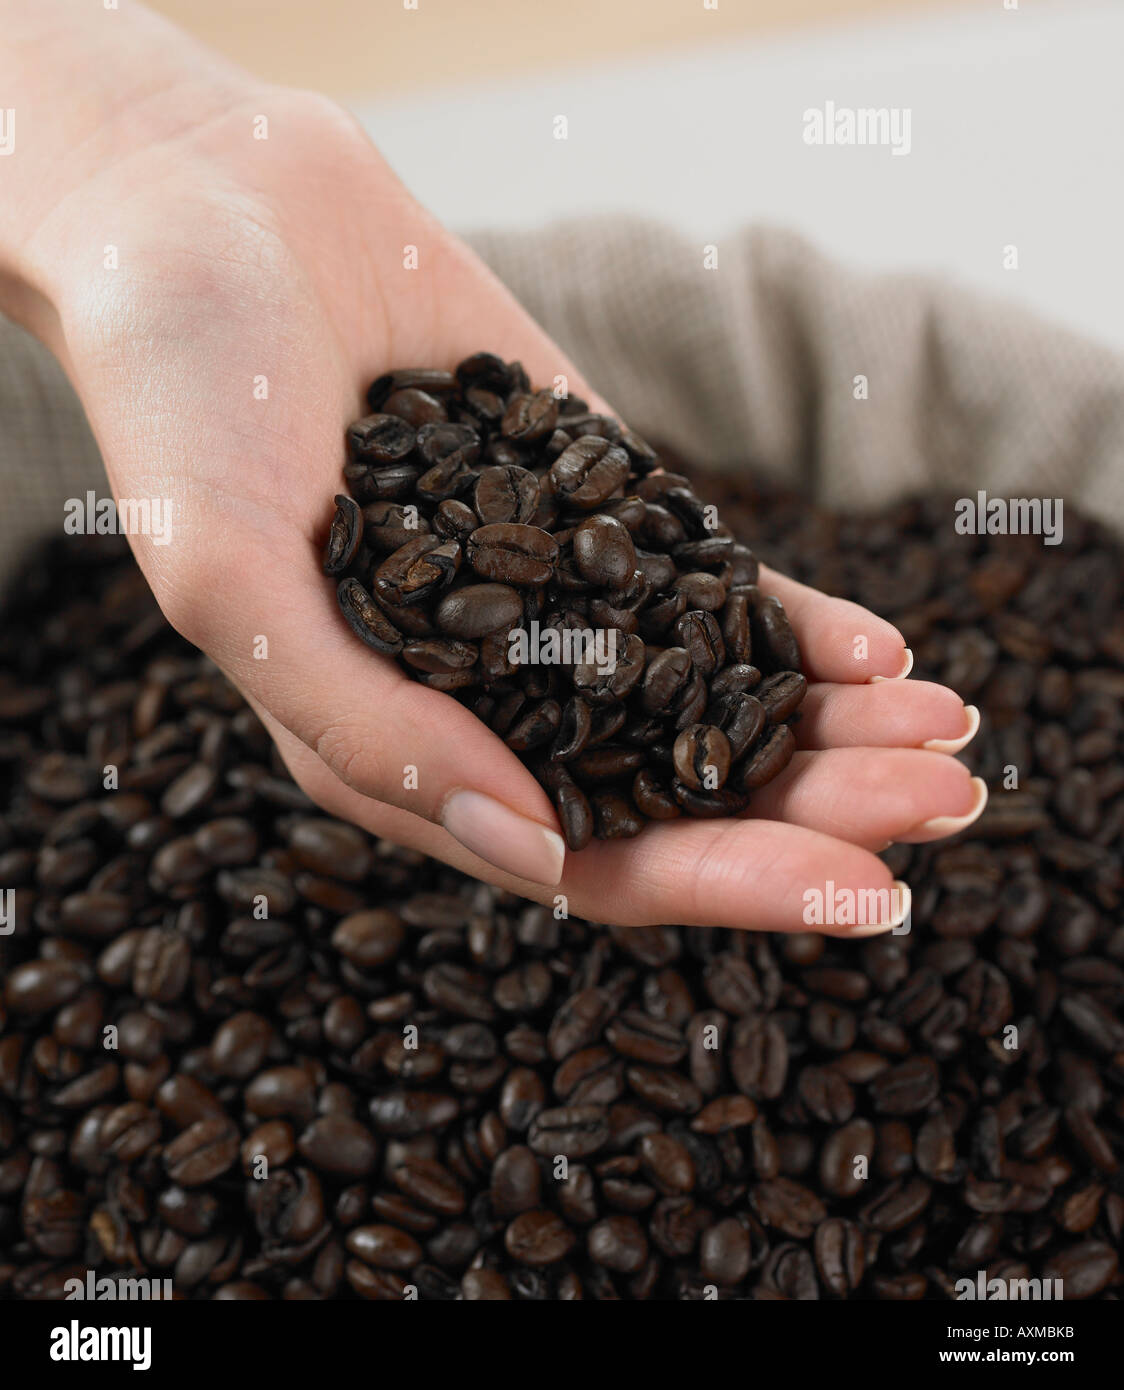 Close up of woman s hand holding coffee beans - Stock Image